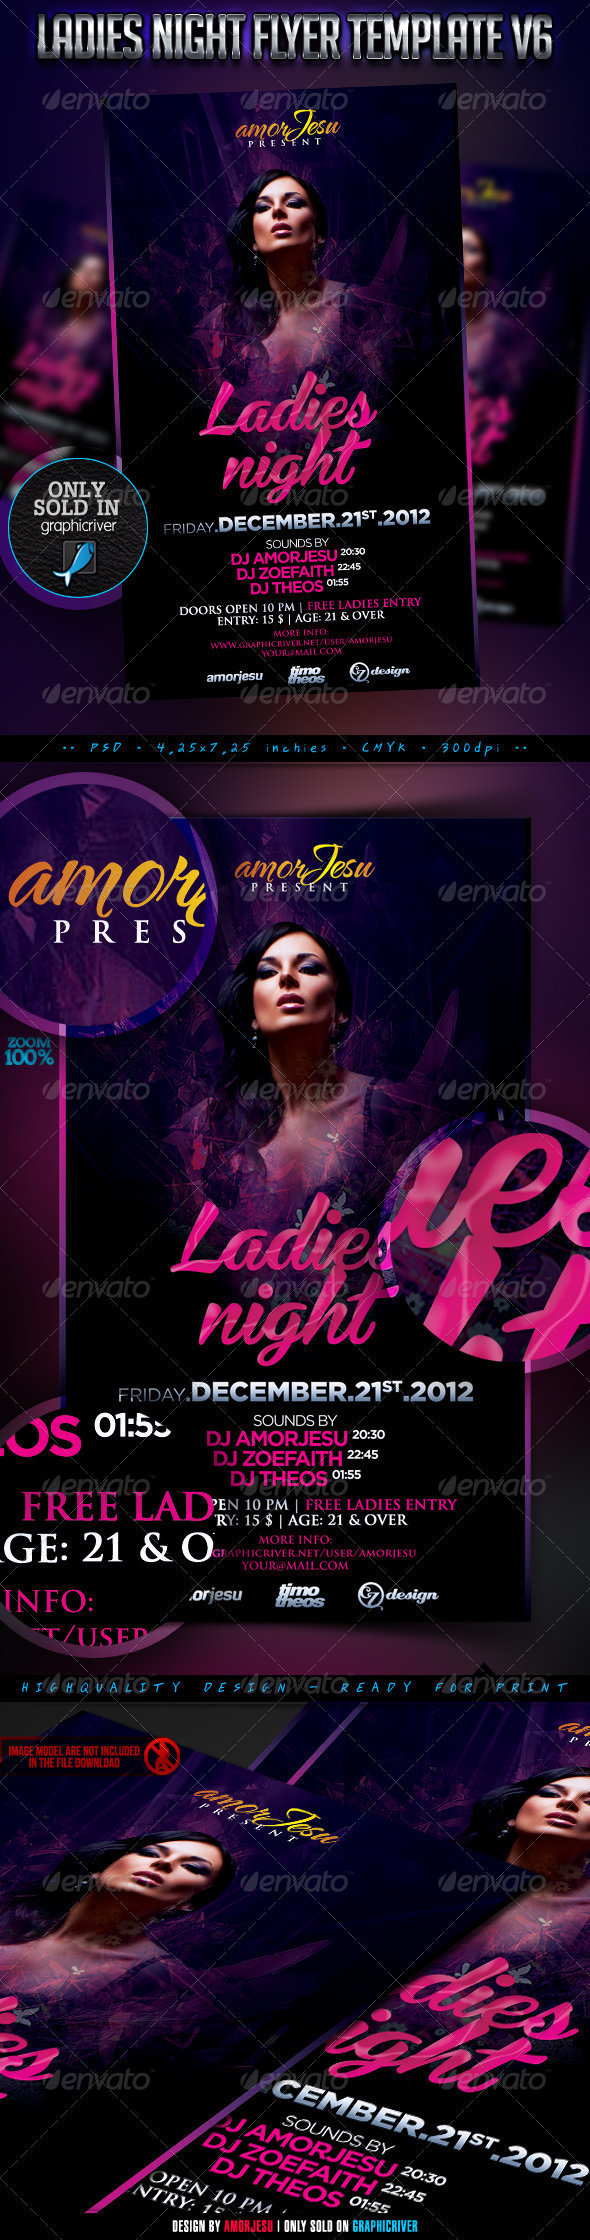 Ladies Night Flyer Template V6 - Clubs & Parties Events